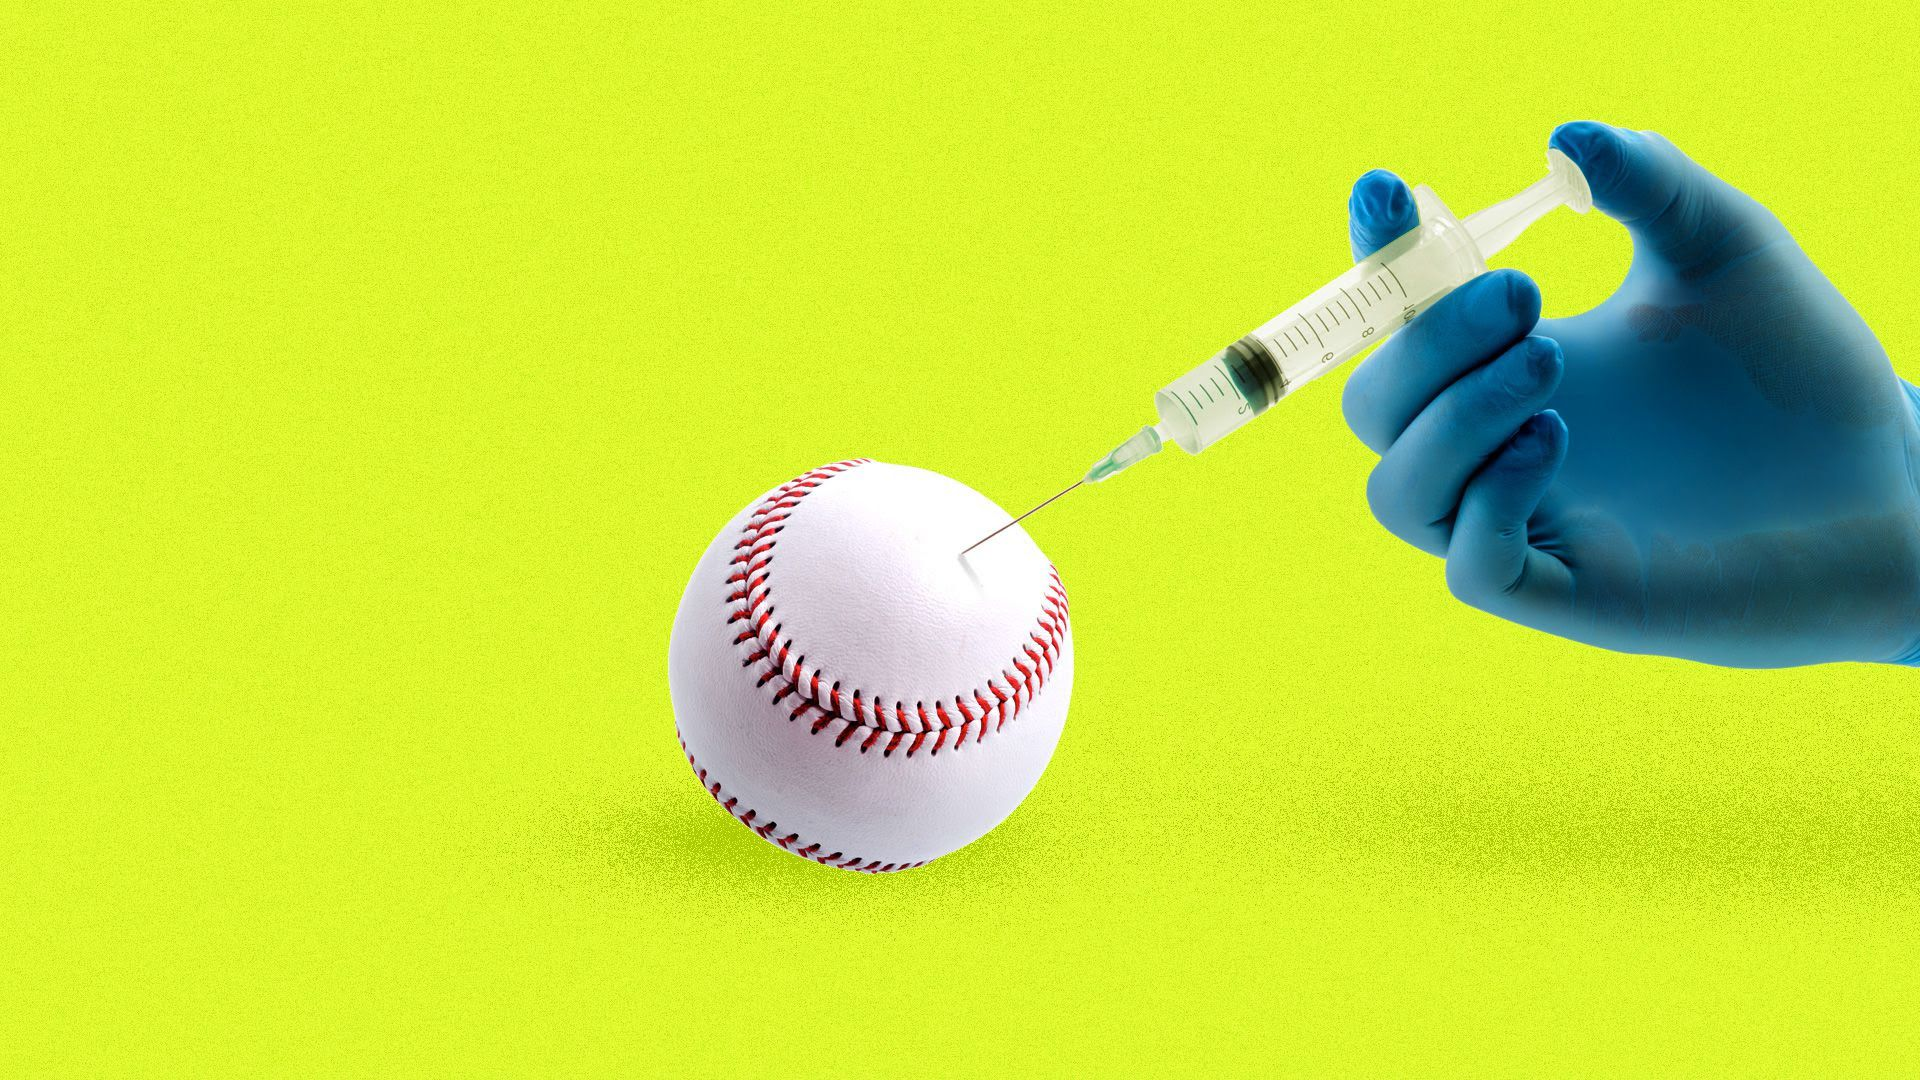 A baseball being injected with a serum